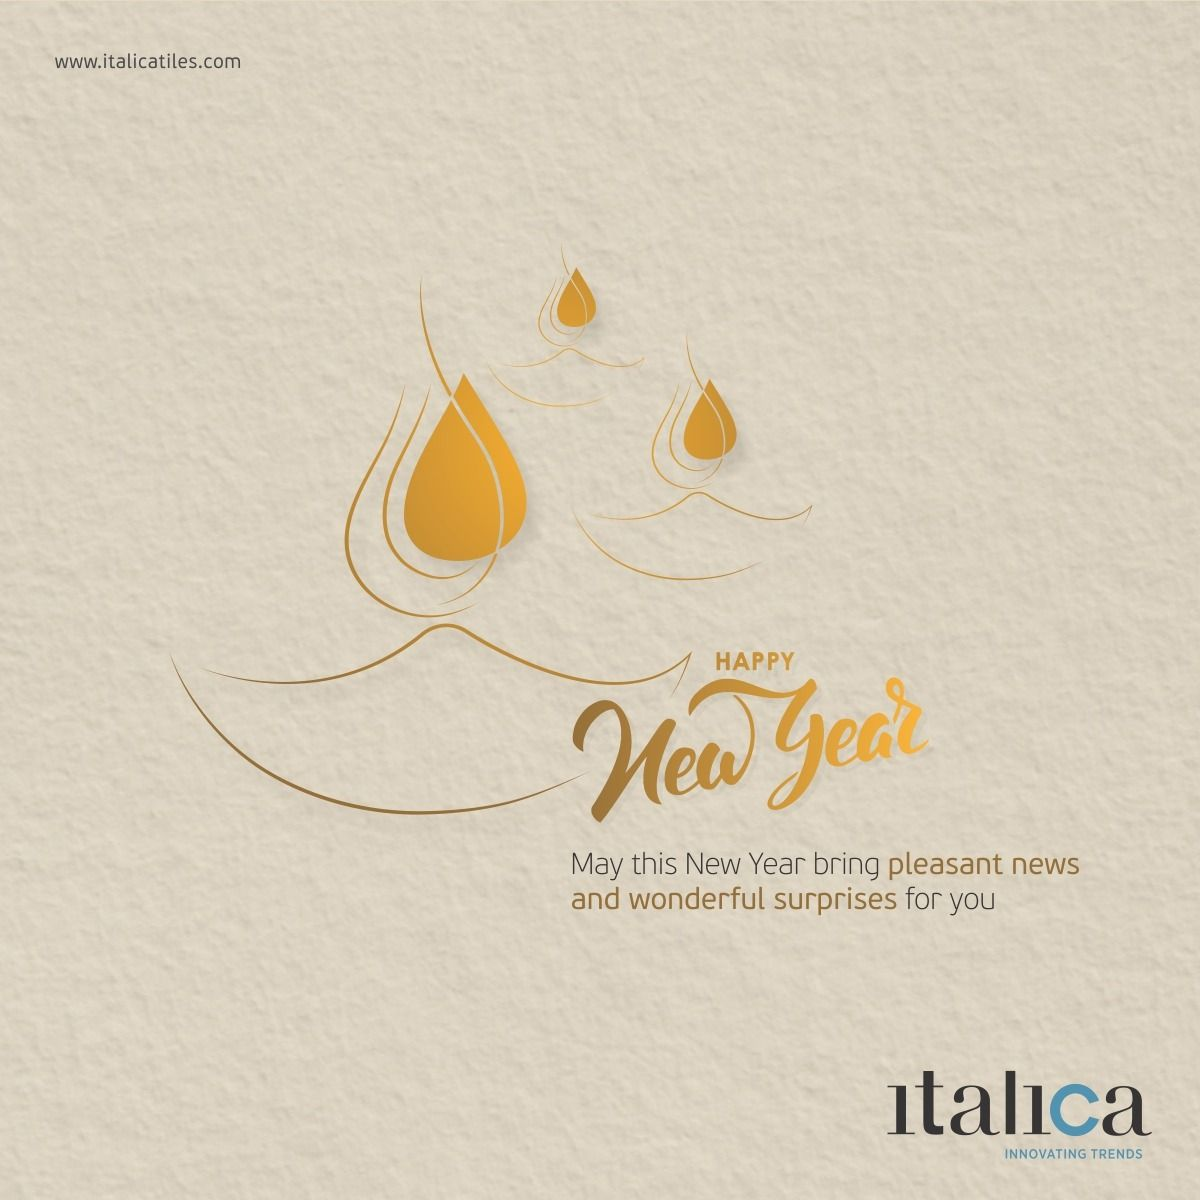 this new year bring pleasant news and wonderful surprises for